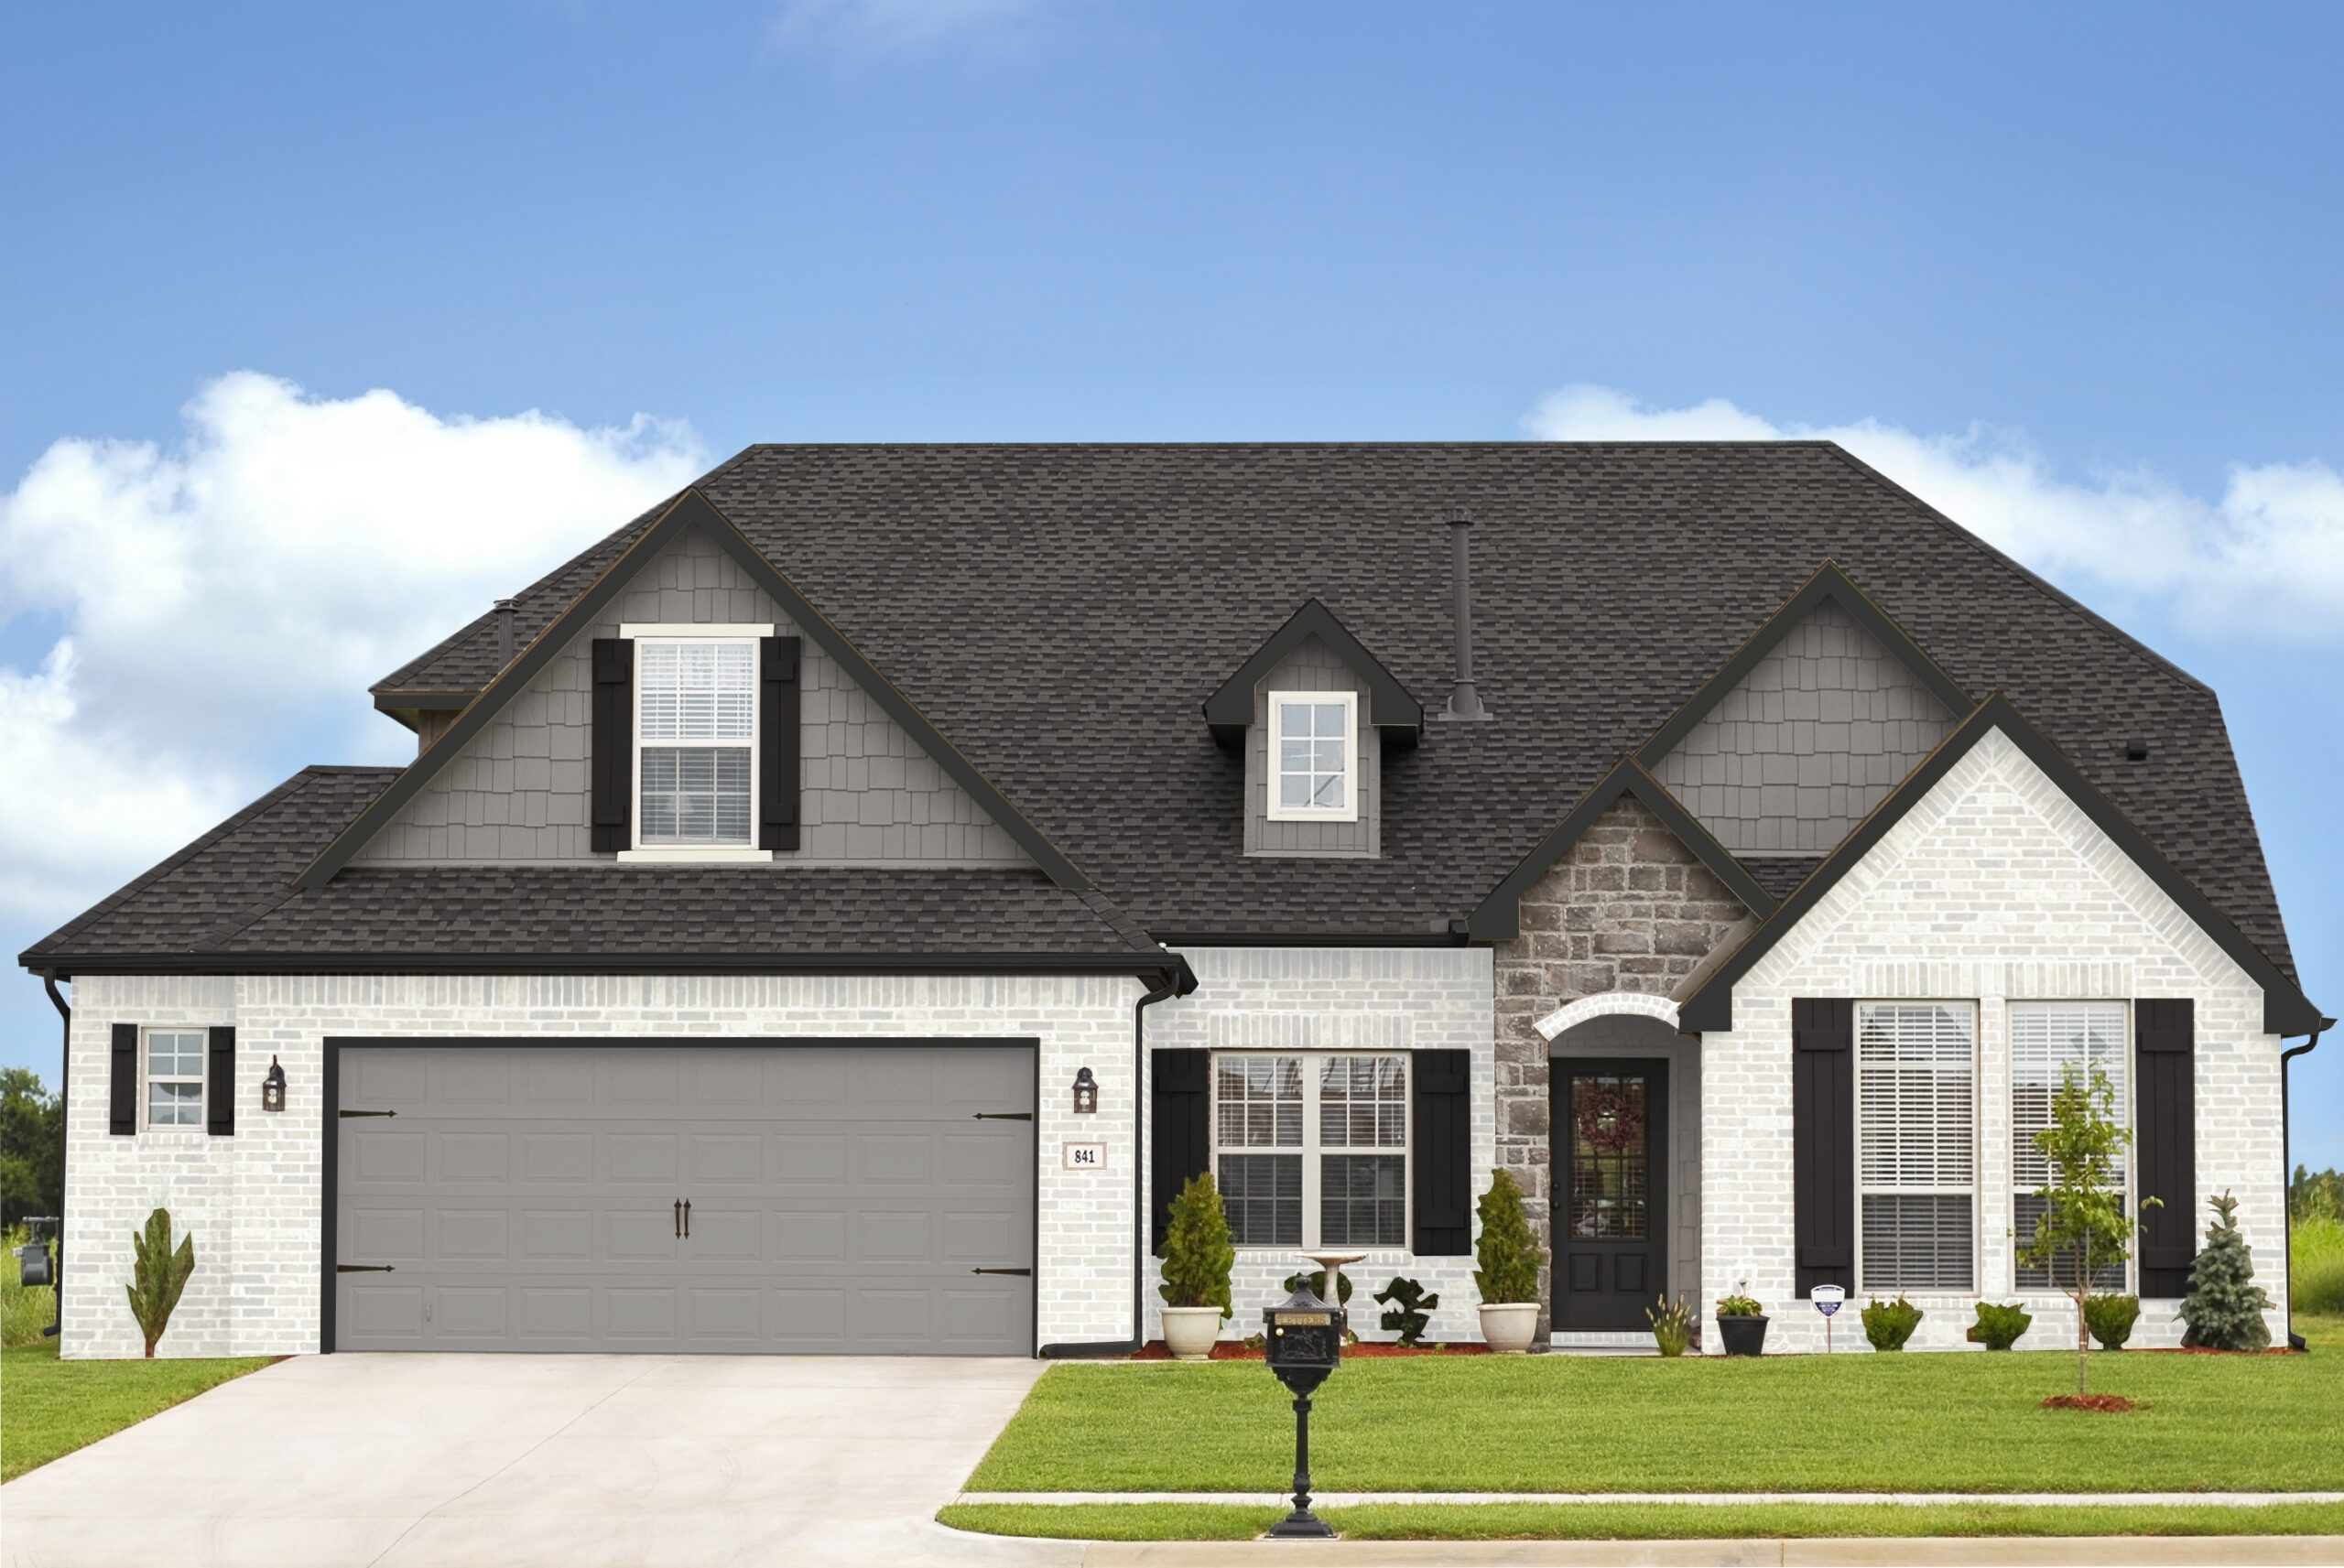 Recruitment House View 42 Exterior Paint Colors That Go With Brick